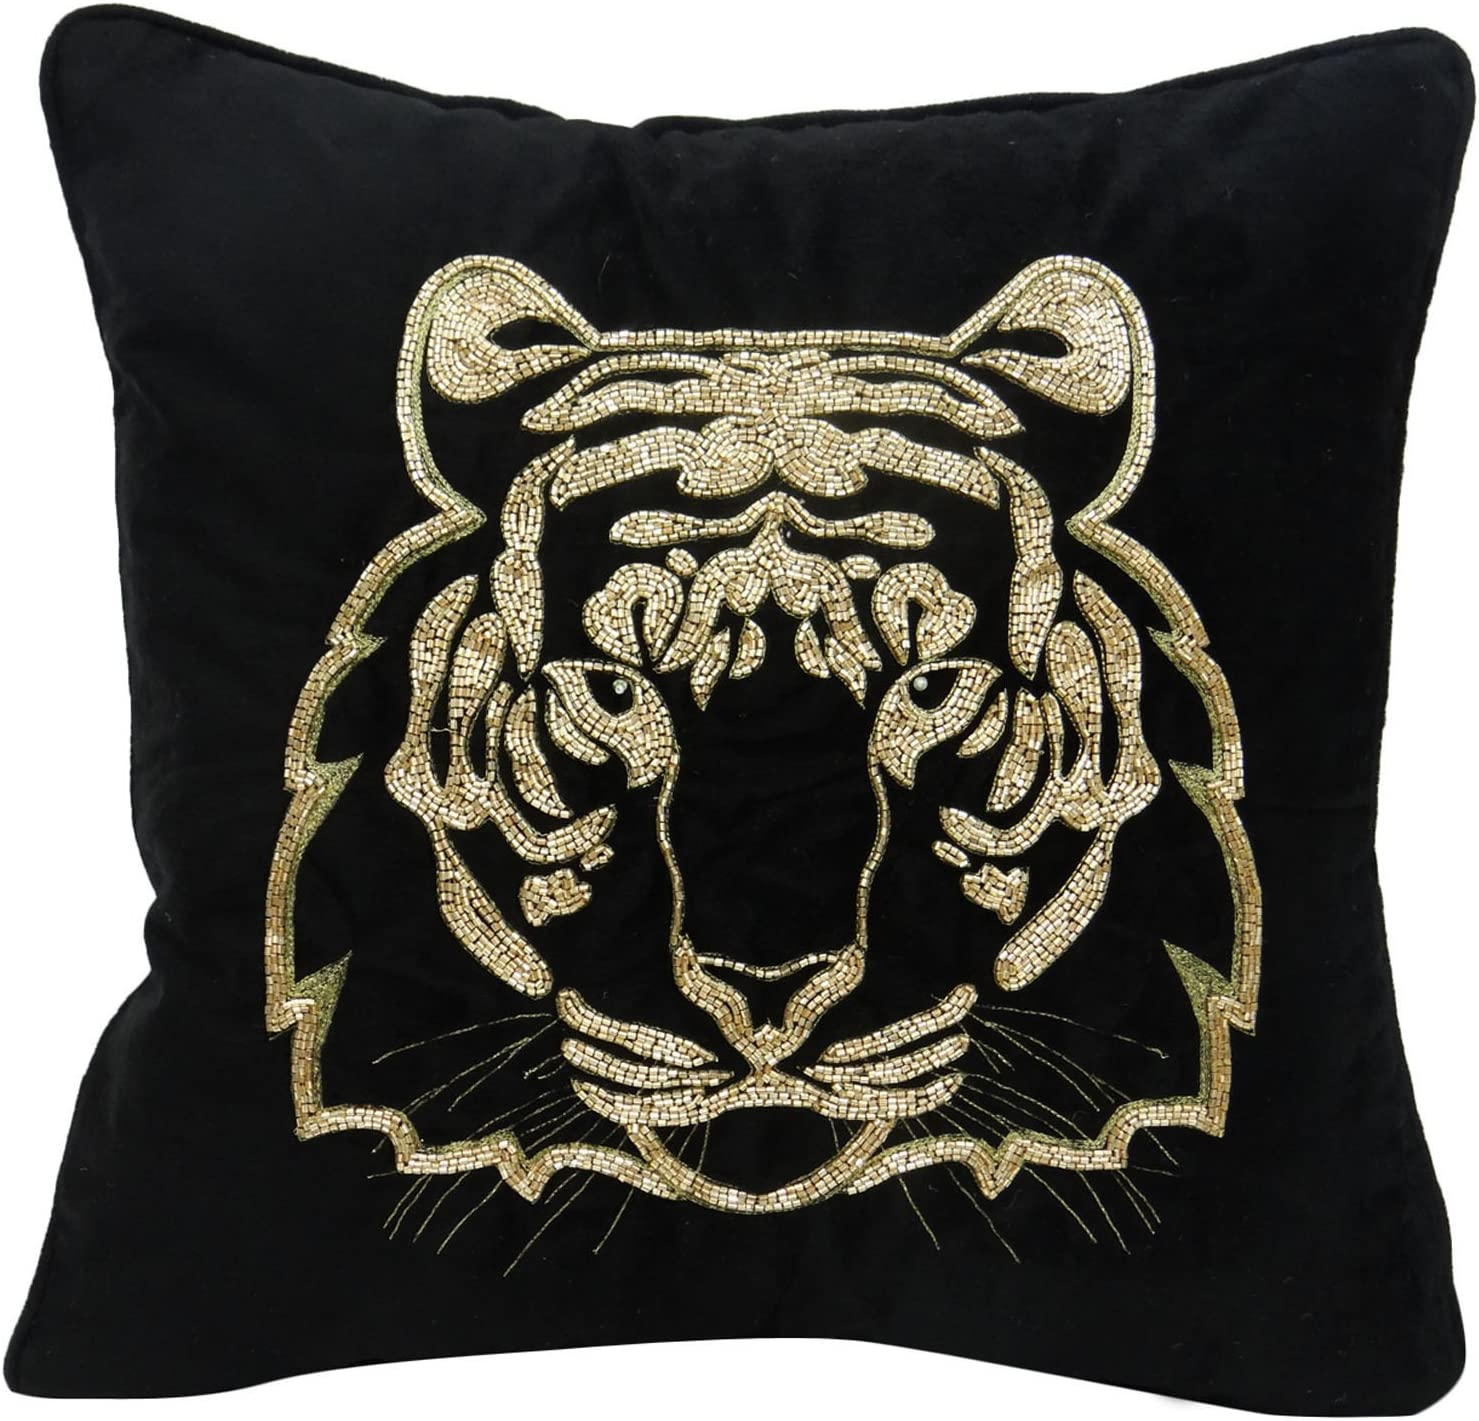 Amazon Com S4sassy Hand Embroidered Tiger Cushion Cover Animal Velvet Pillow Case Square Black 20 X 20 Home Kitchen